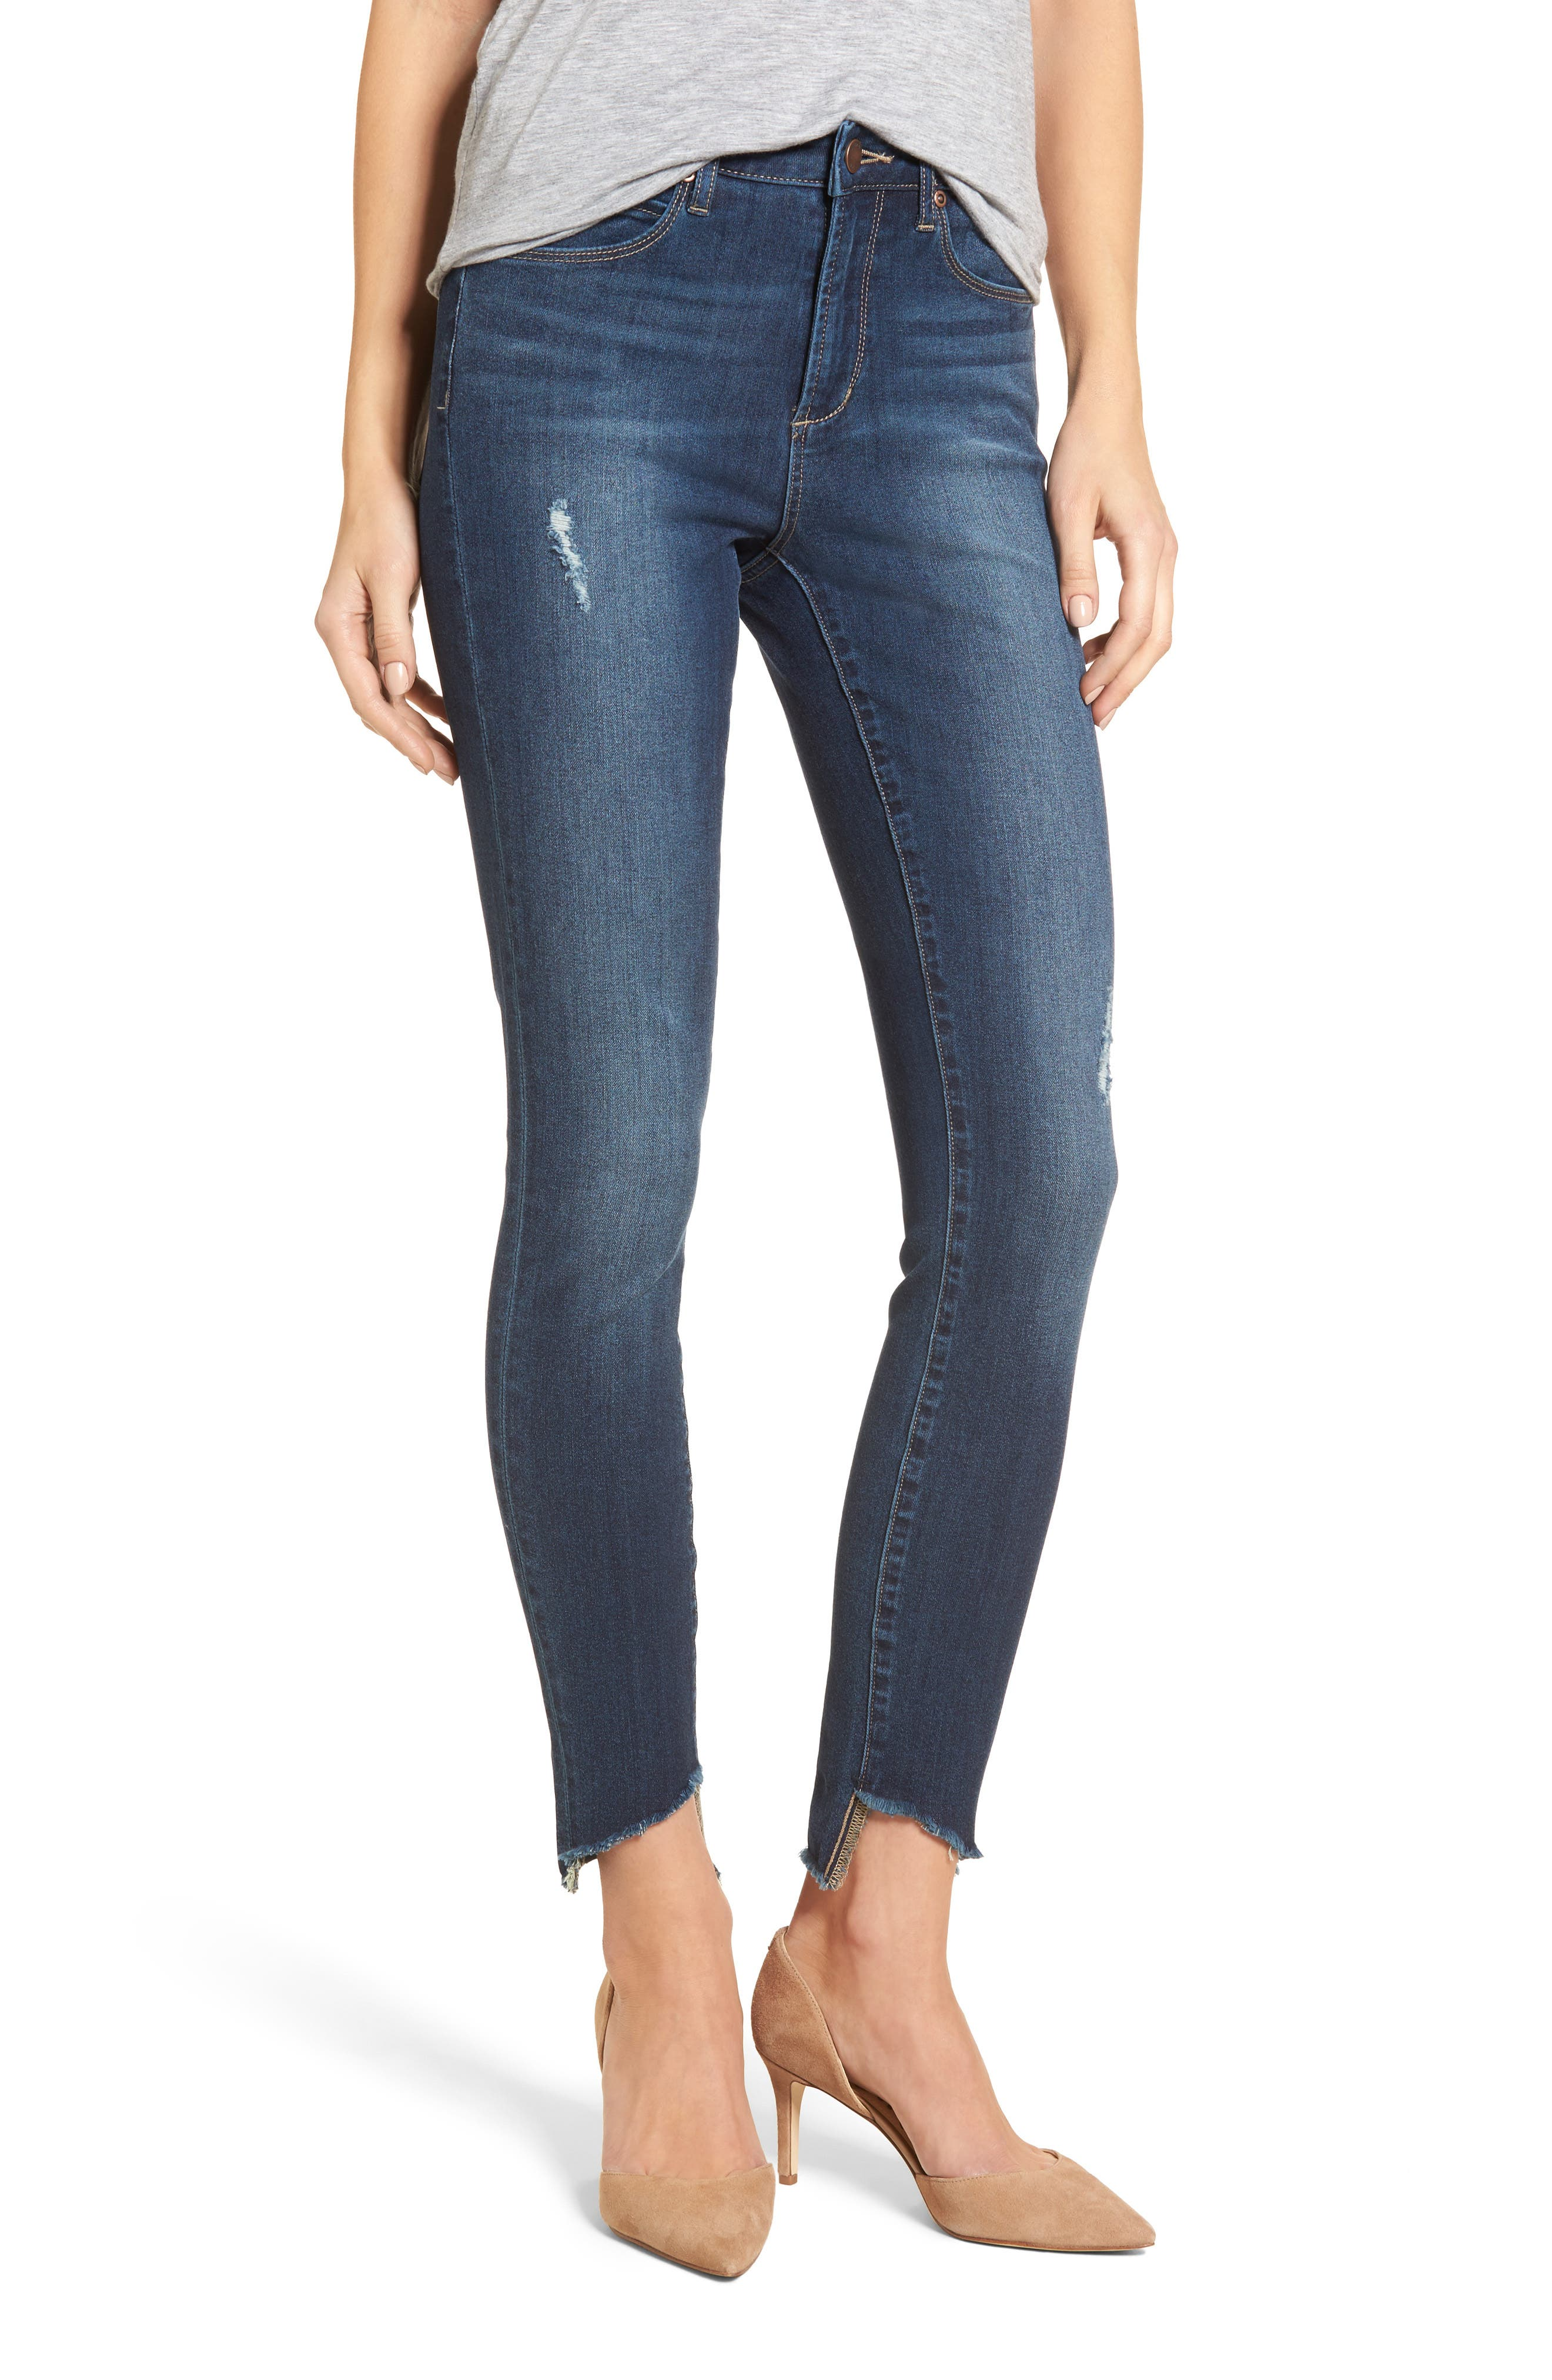 Leith Diagonal Ripped Step Skinny Jeans